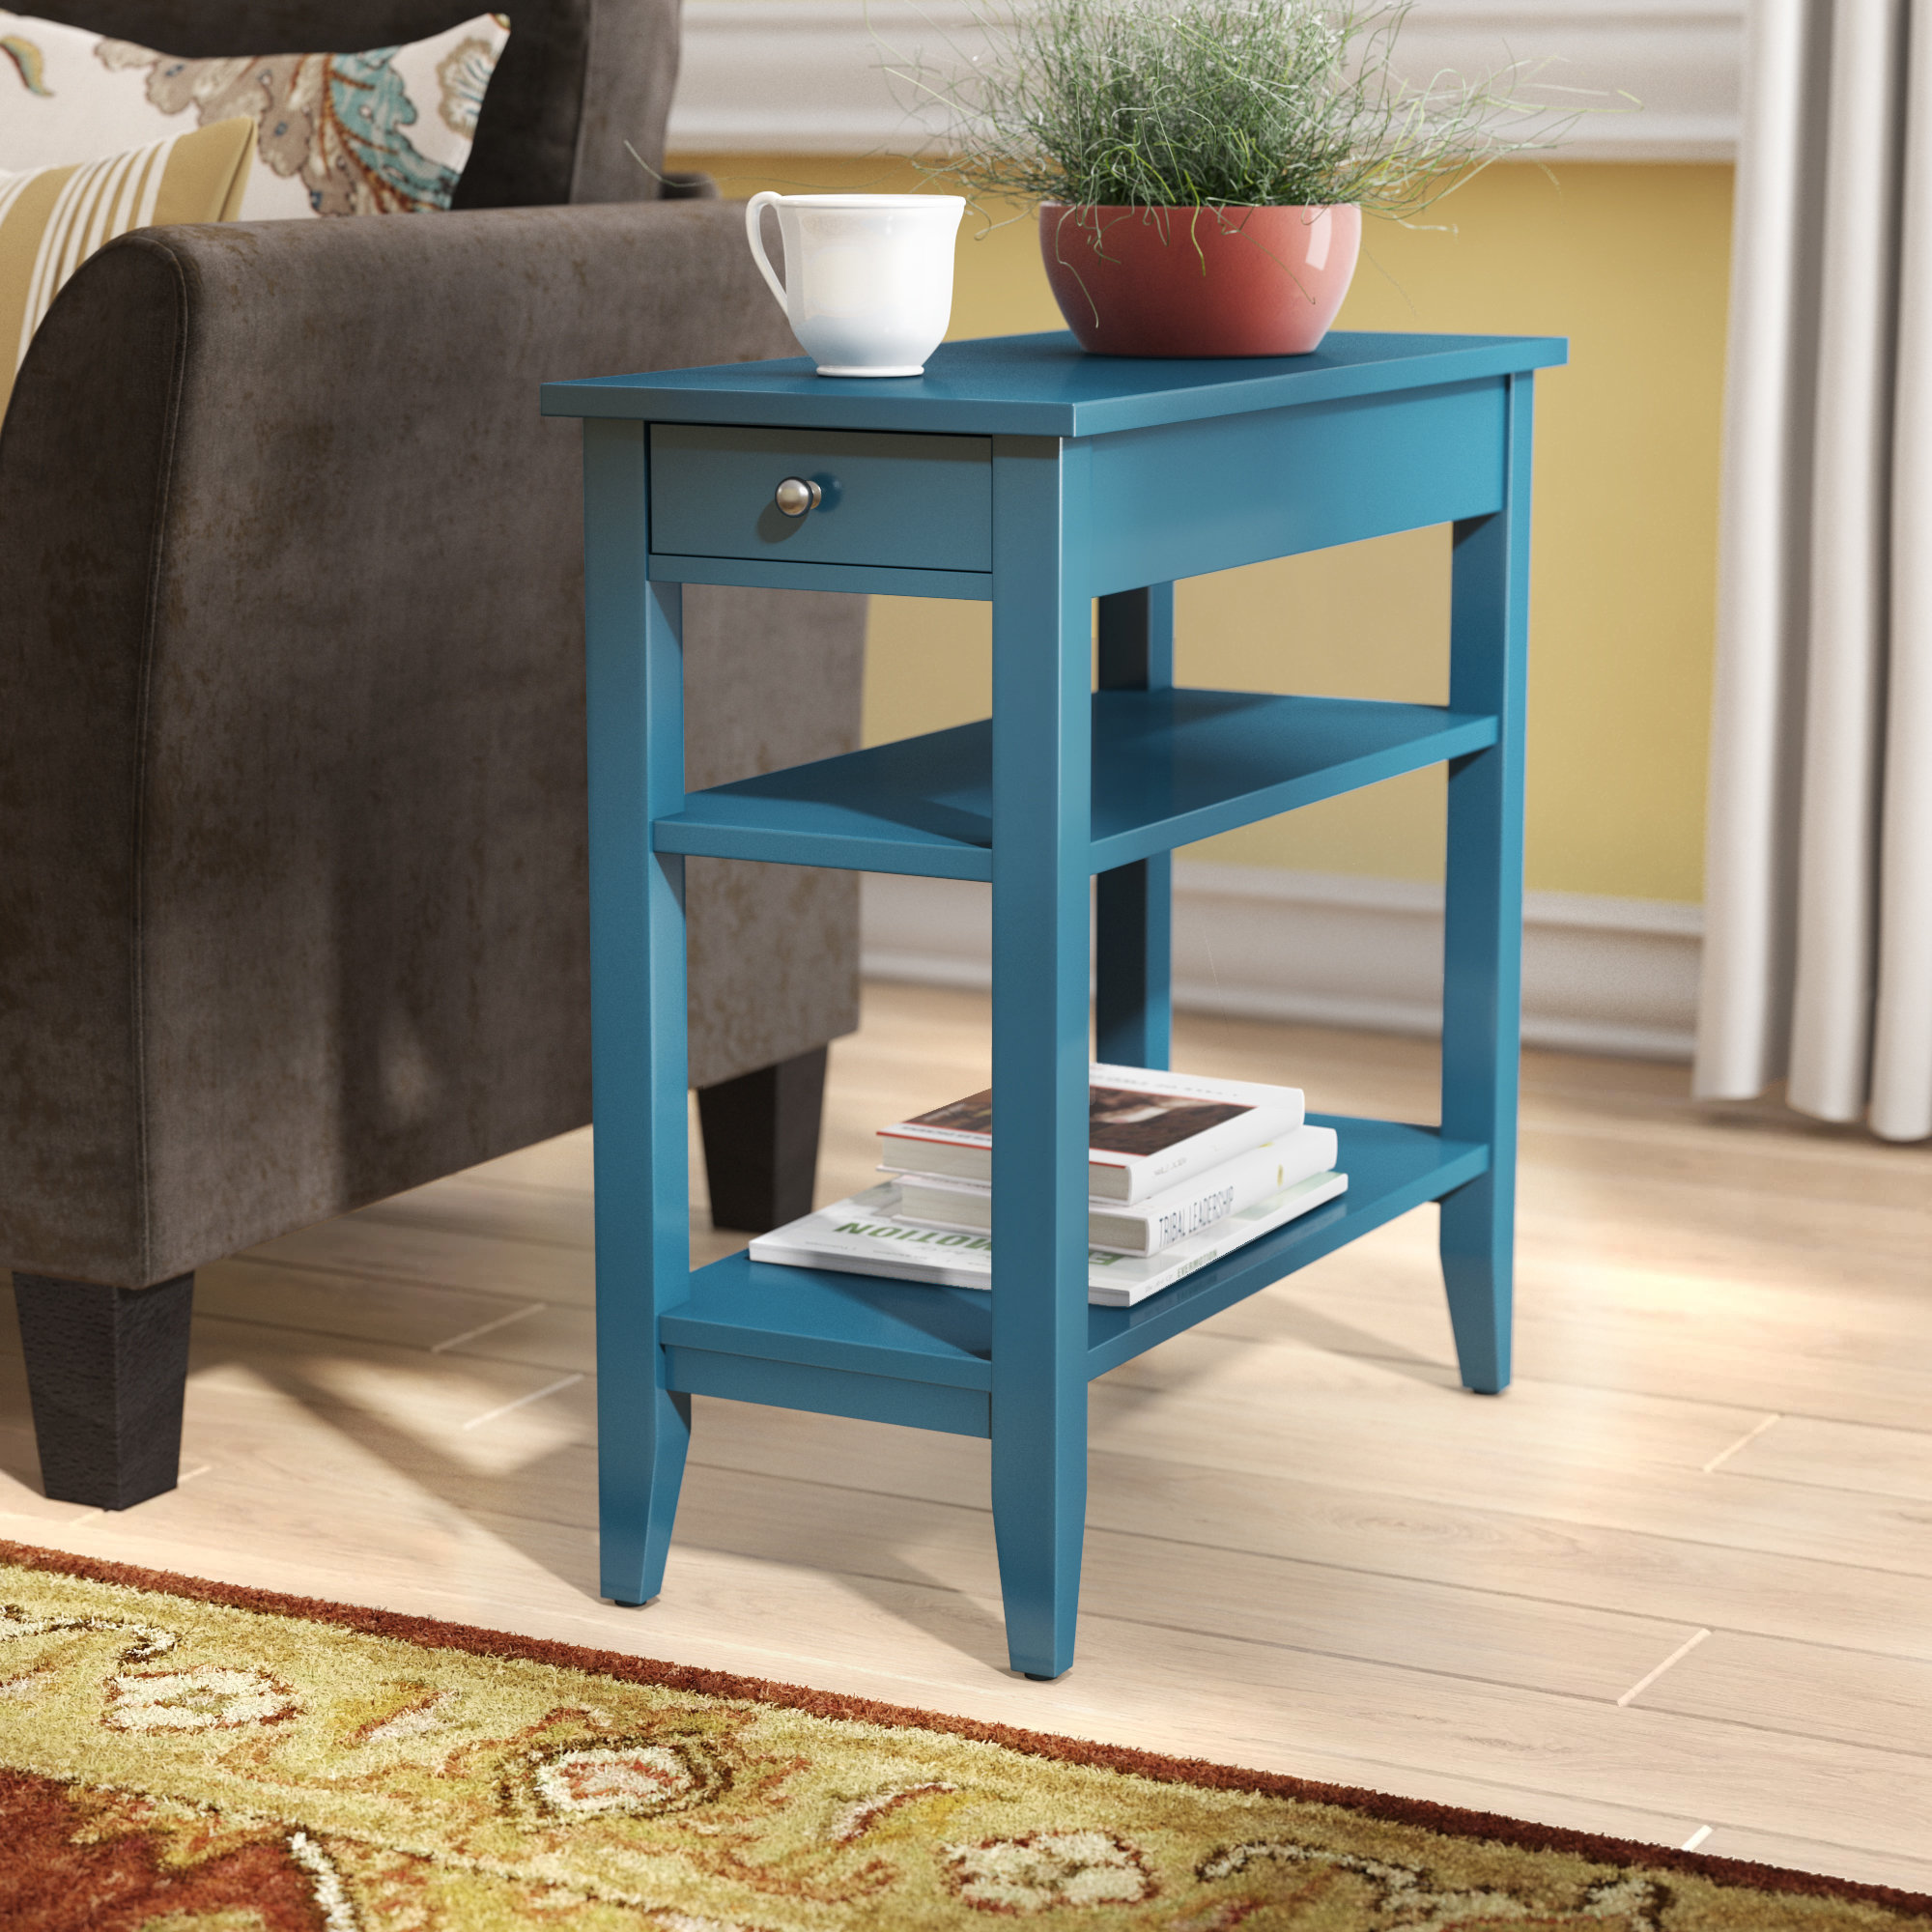 small end tables you love dominique table patchen accent ikea garden dark blue console with cabinets home decor mirrors round vinyl tablecloth side cabinet childrens kitchen teal